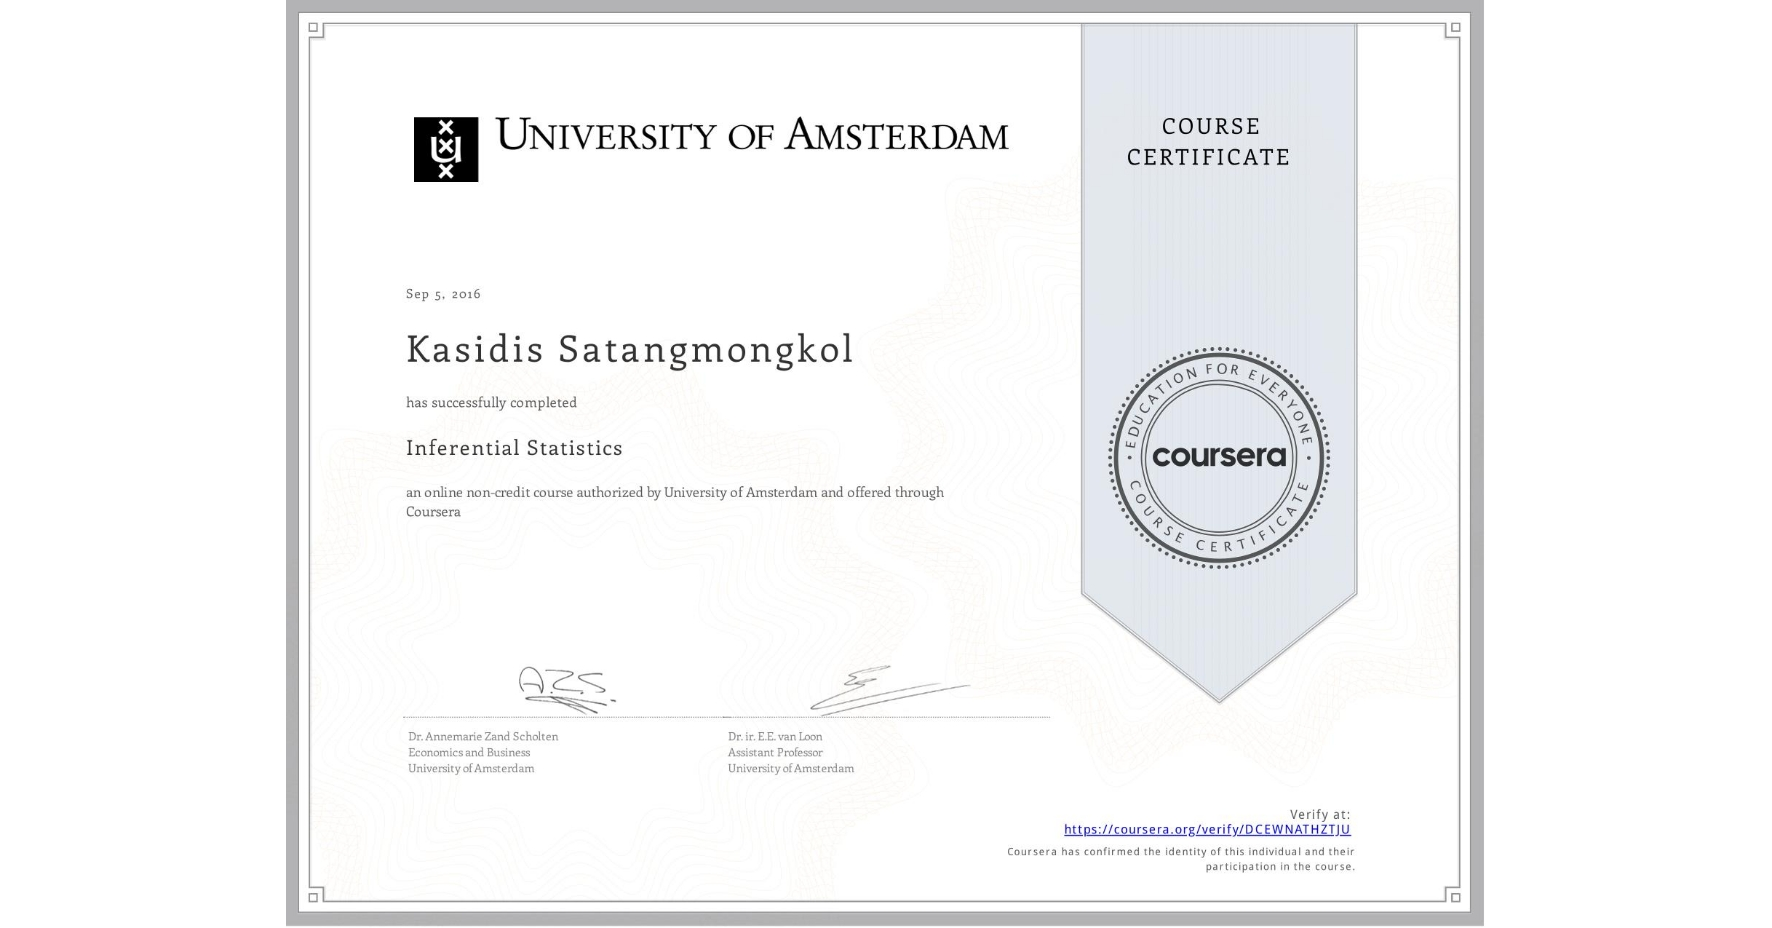 View certificate for KASIDIS SATANGMONGKOL, Inferential Statistics, an online non-credit course authorized by University of Amsterdam and offered through Coursera